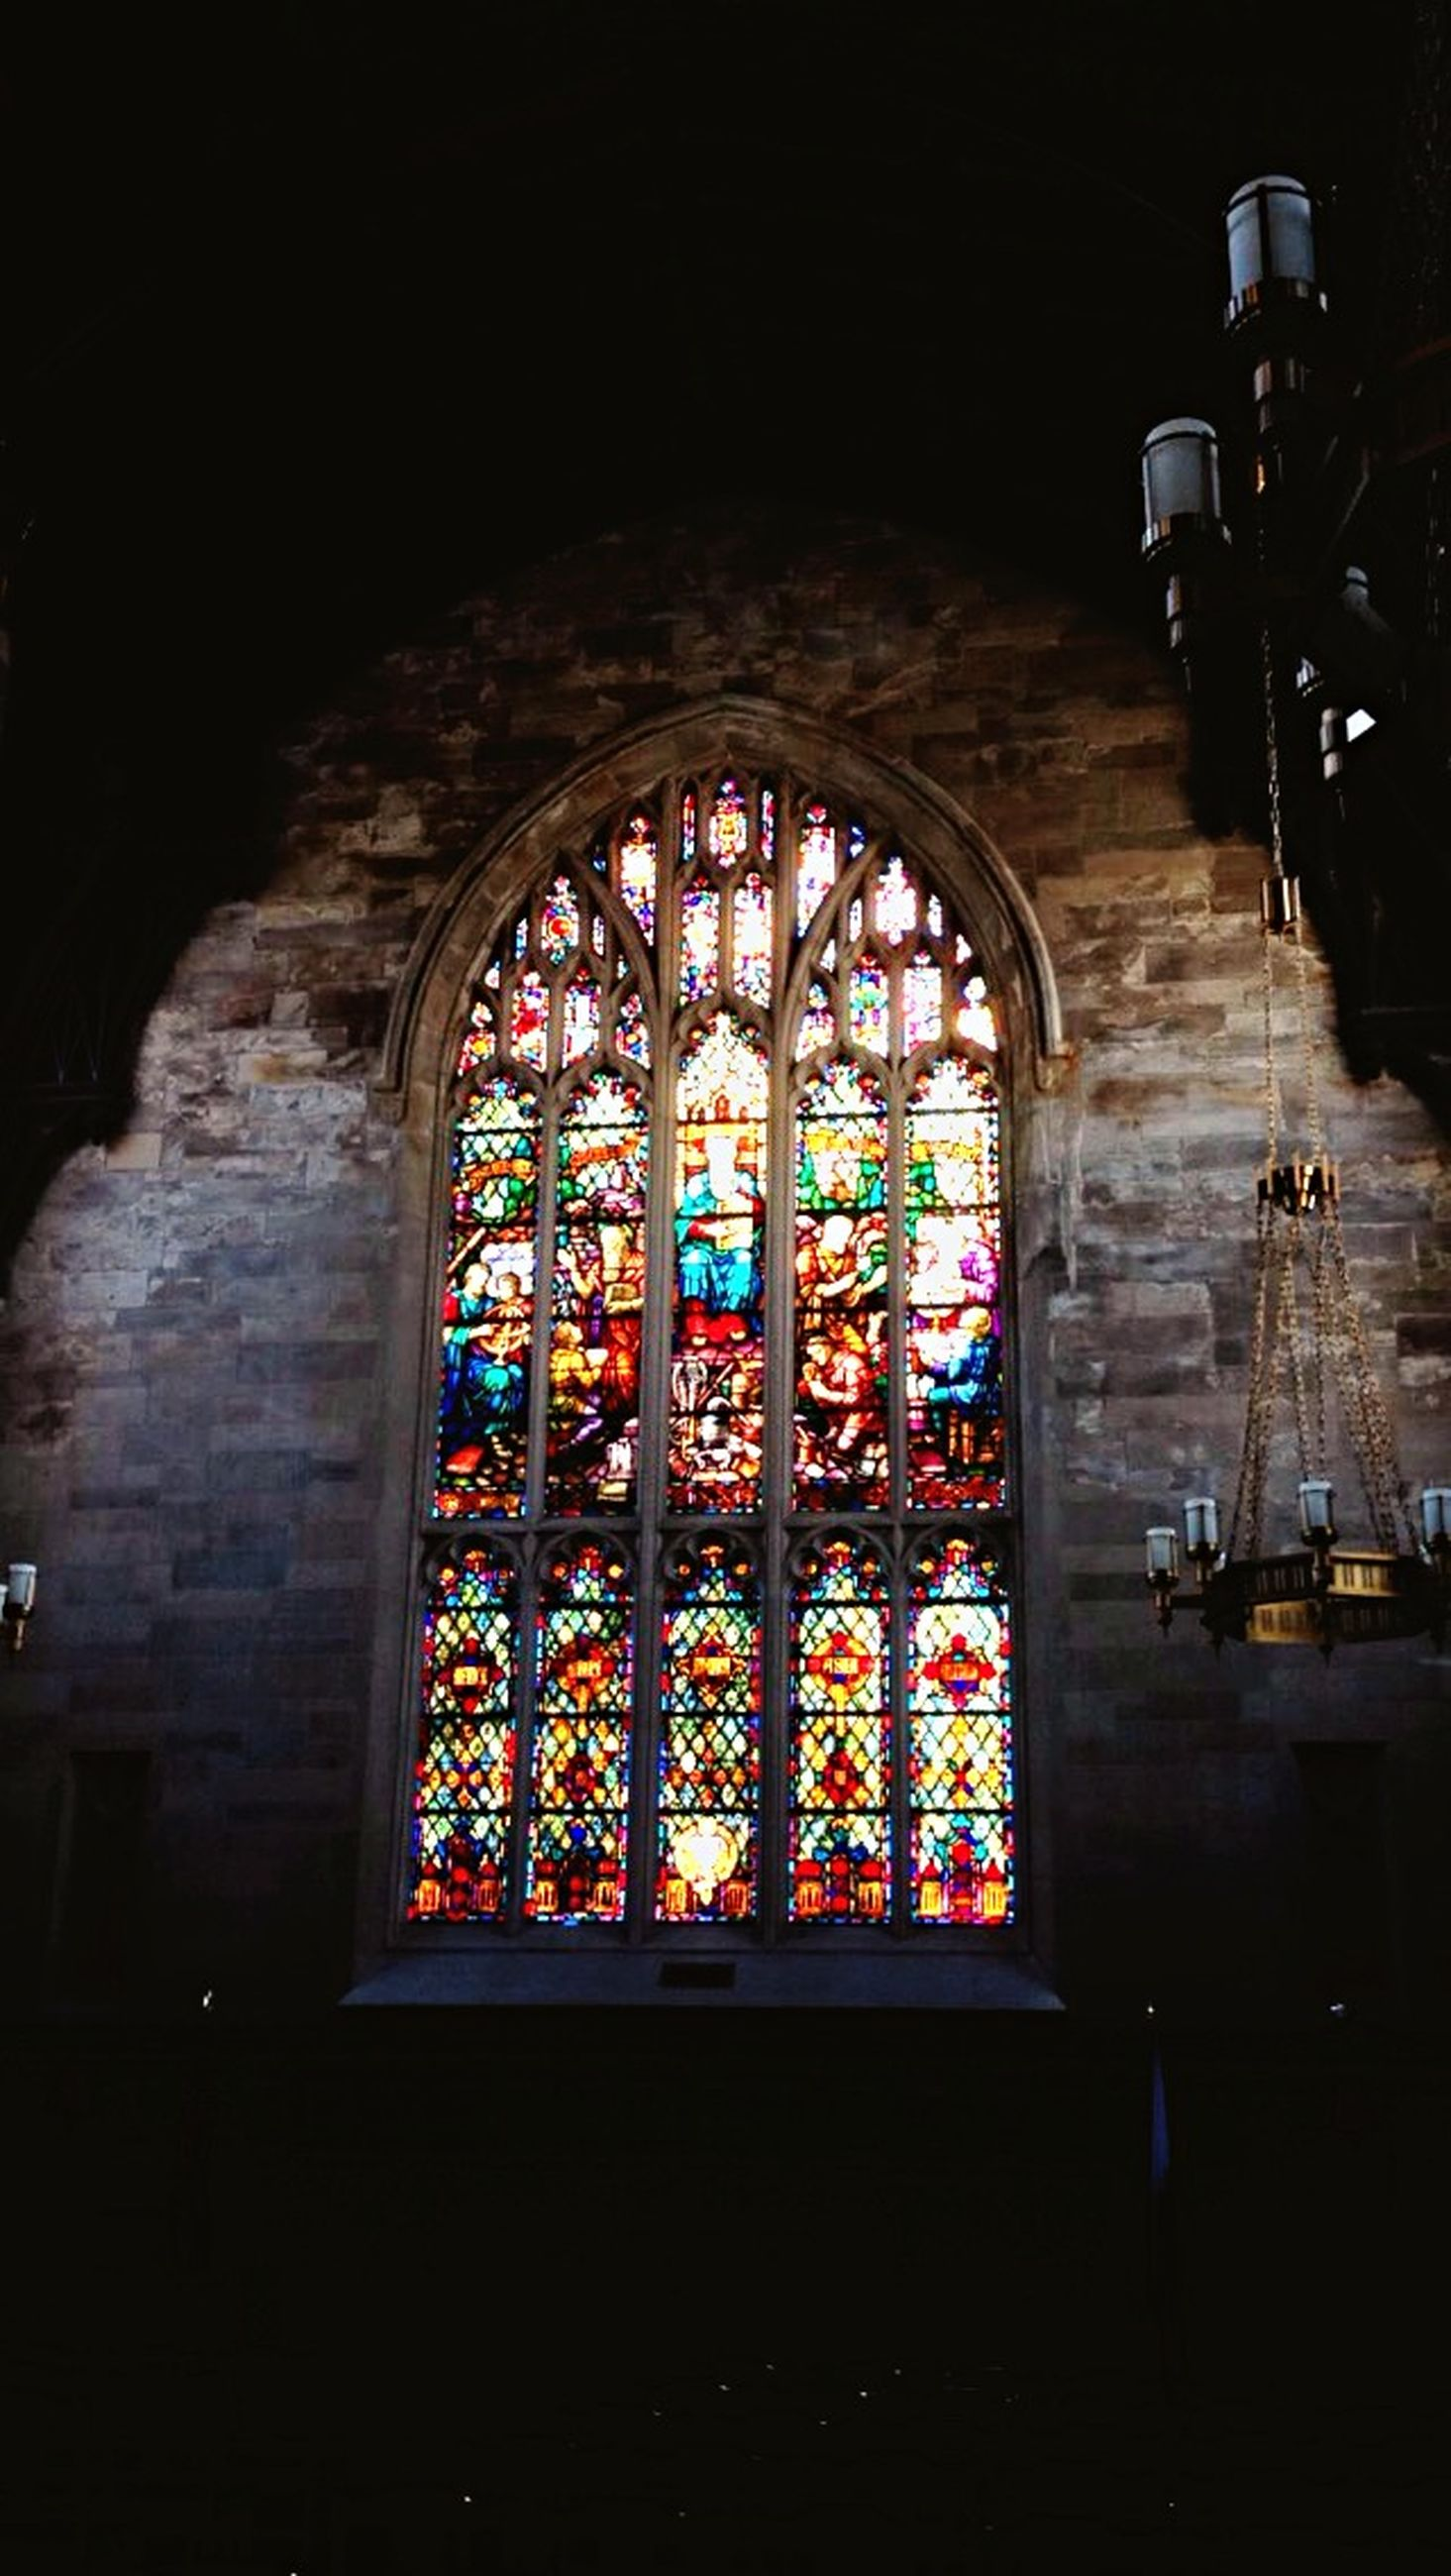 indoors, religion, place of worship, architecture, stained glass, built structure, spirituality, church, window, arch, multi colored, art, art and craft, ornate, design, illuminated, no people, entrance